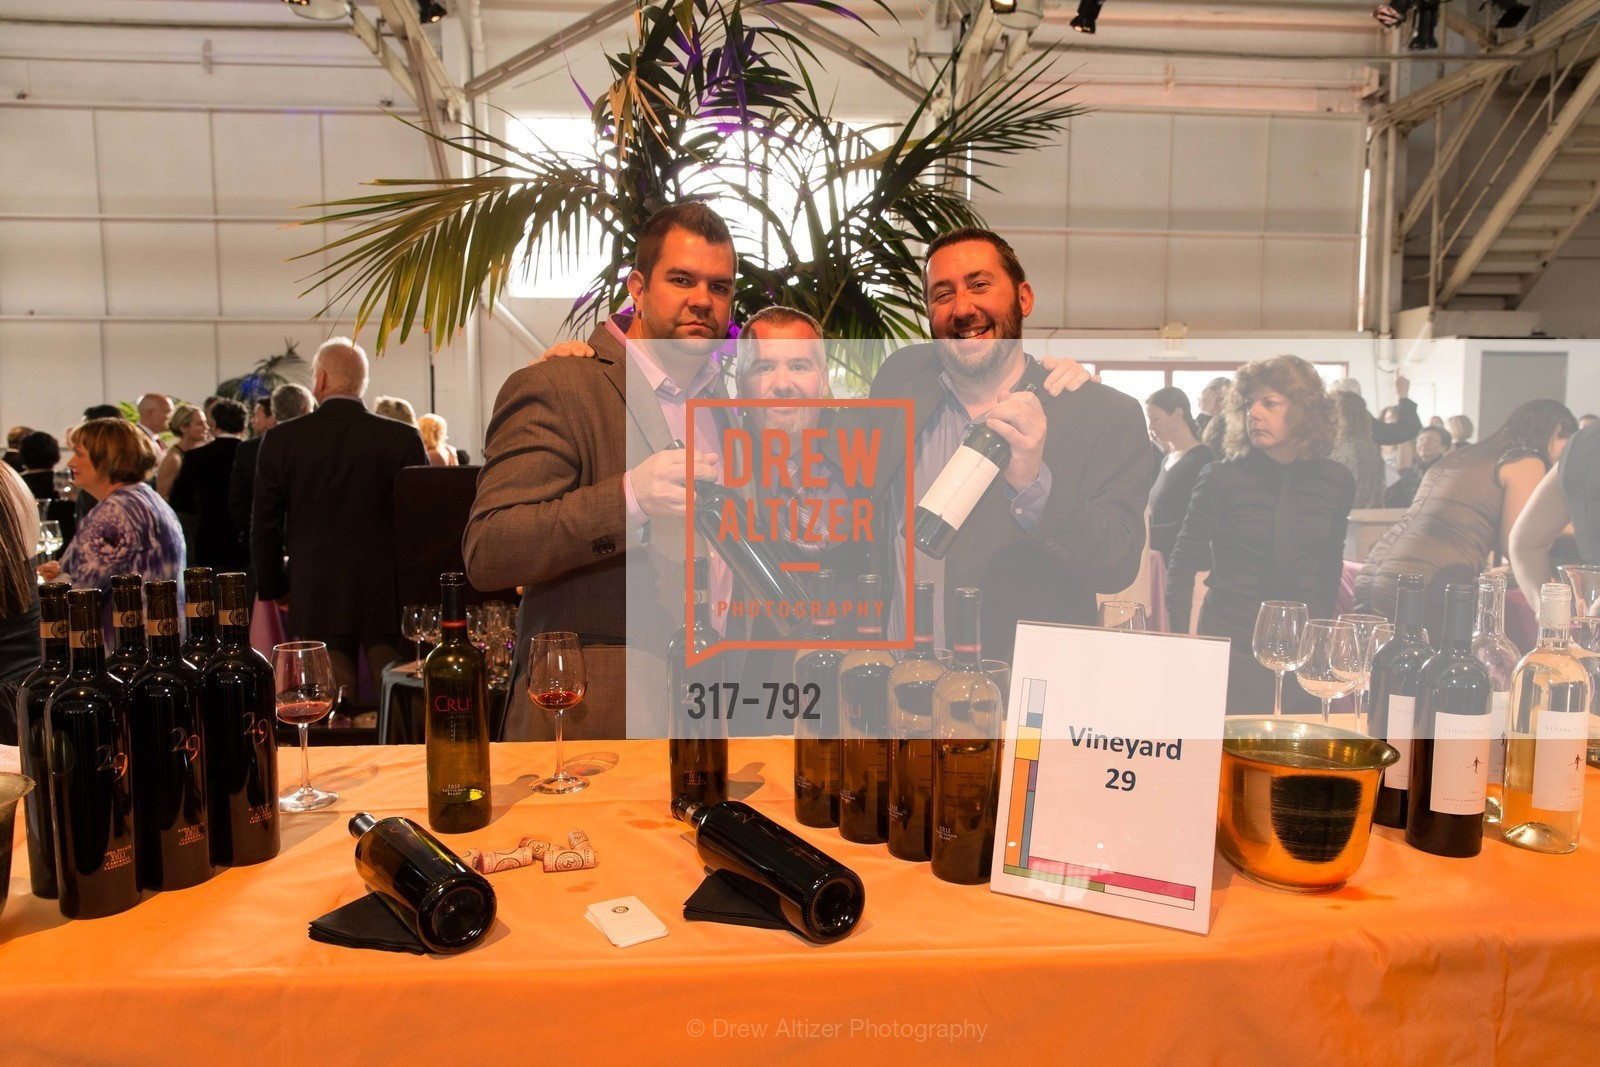 Vineyar 29, MEALS ON WHEELS OF SAN FRANCISCO'S 28th Annual Star Chefs and Vintners Gala, US, April 19th, 2015,Drew Altizer, Drew Altizer Photography, full-service agency, private events, San Francisco photographer, photographer california